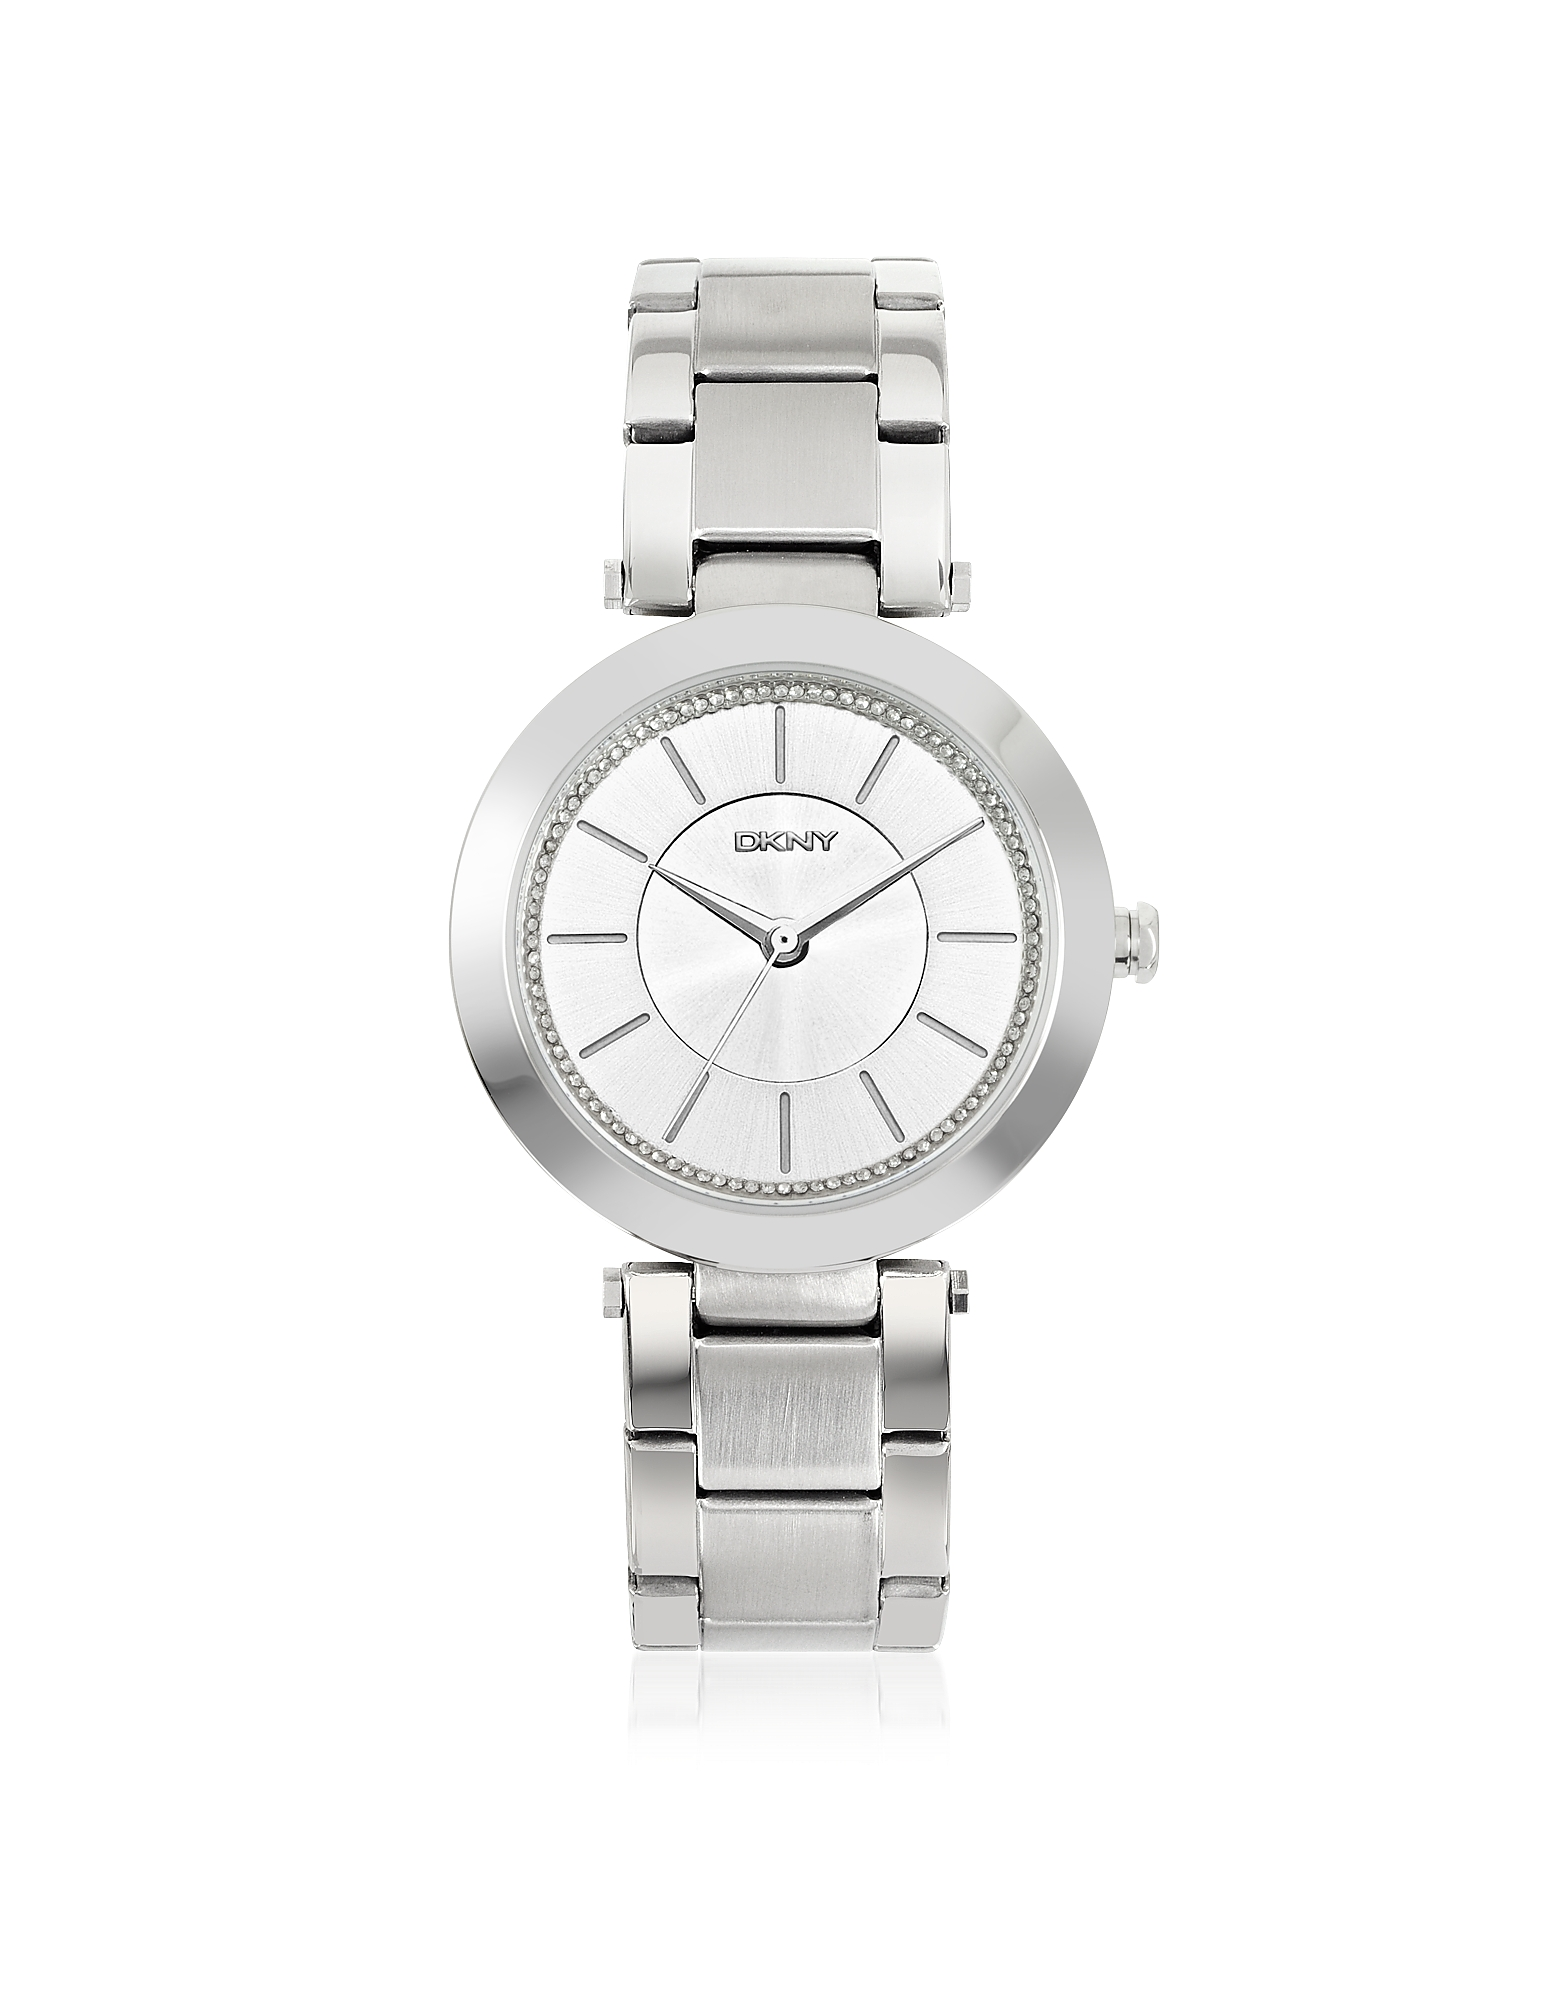 DKNY Women's Watches, Stanhope Silver Tone Stainless Steel Women's Watch